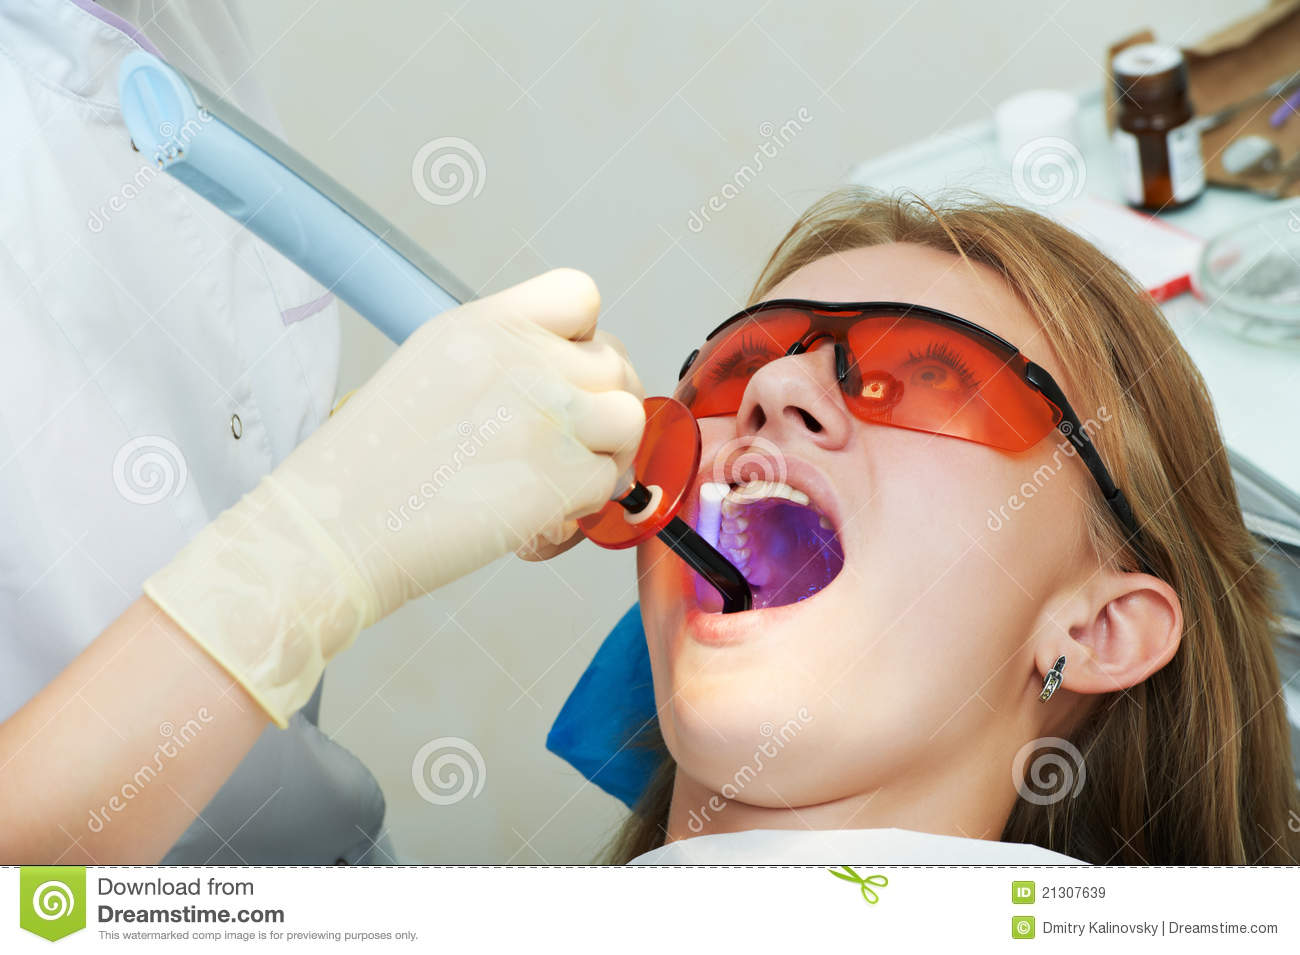 Dental Filing Of Child Tooth By Ultraviolet Light Stock